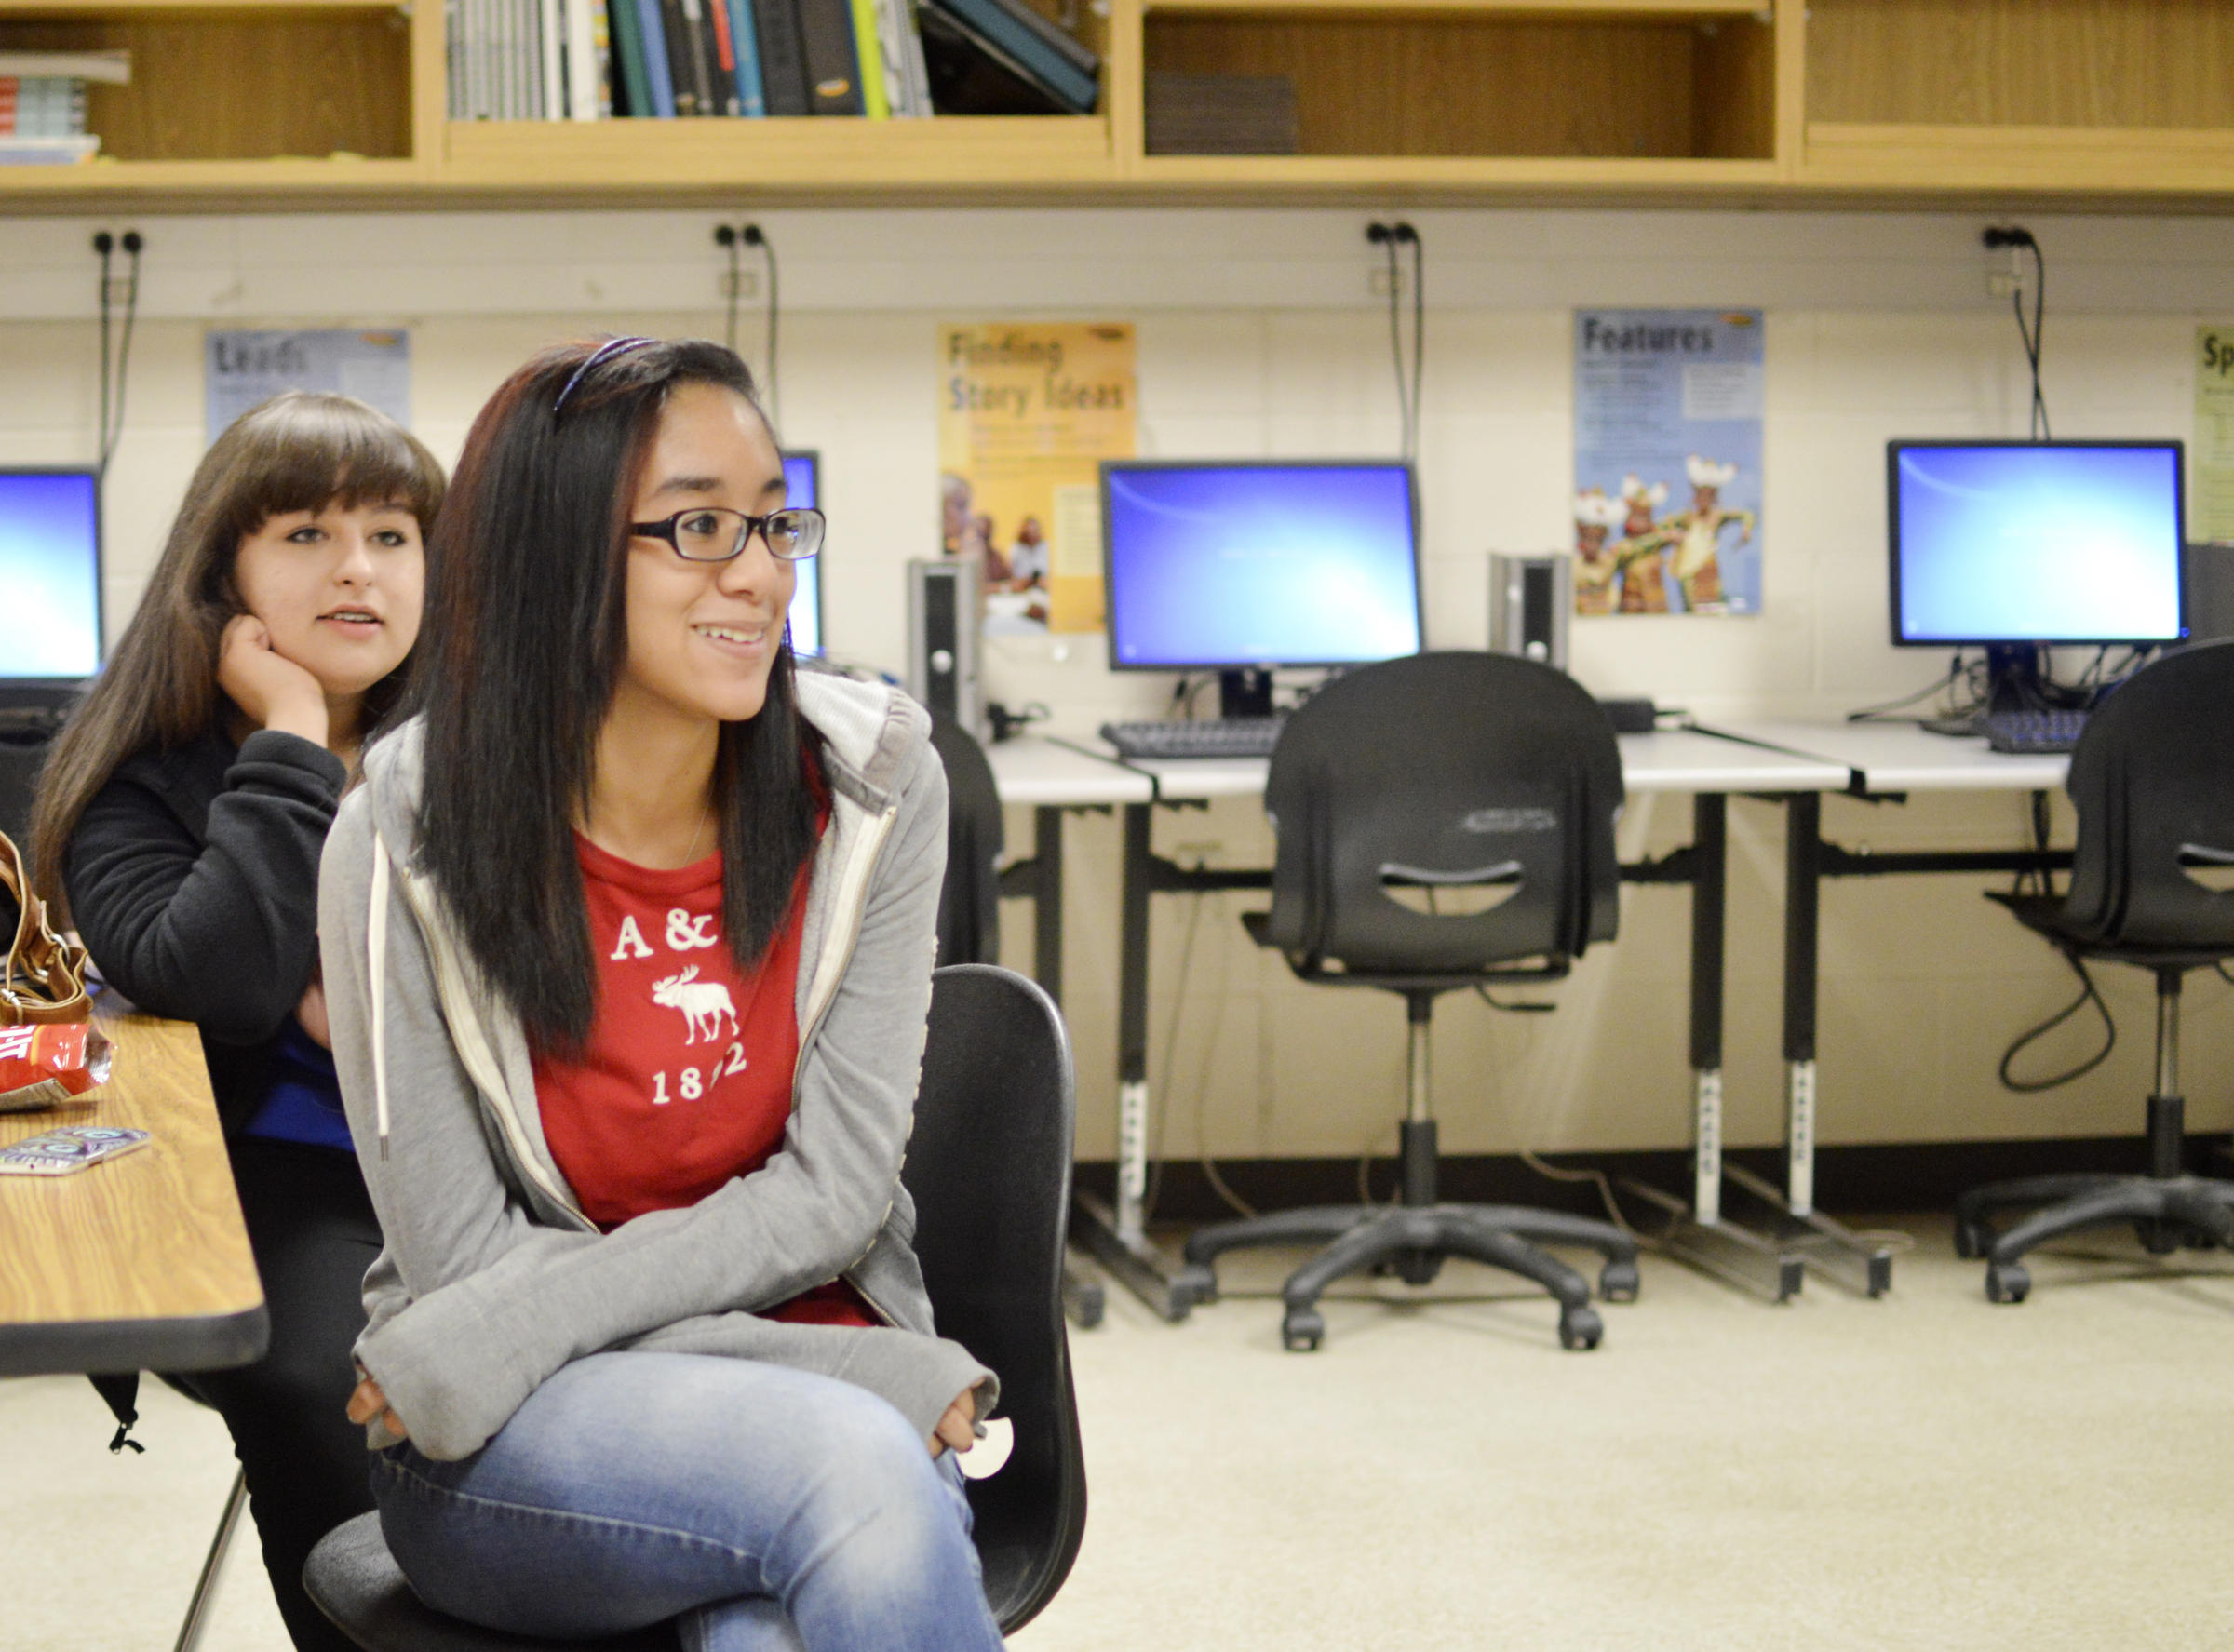 in north texas many teenage workers are making more than minimum jaede del right and her classmate gwen voss both work after school and make above minimum wage